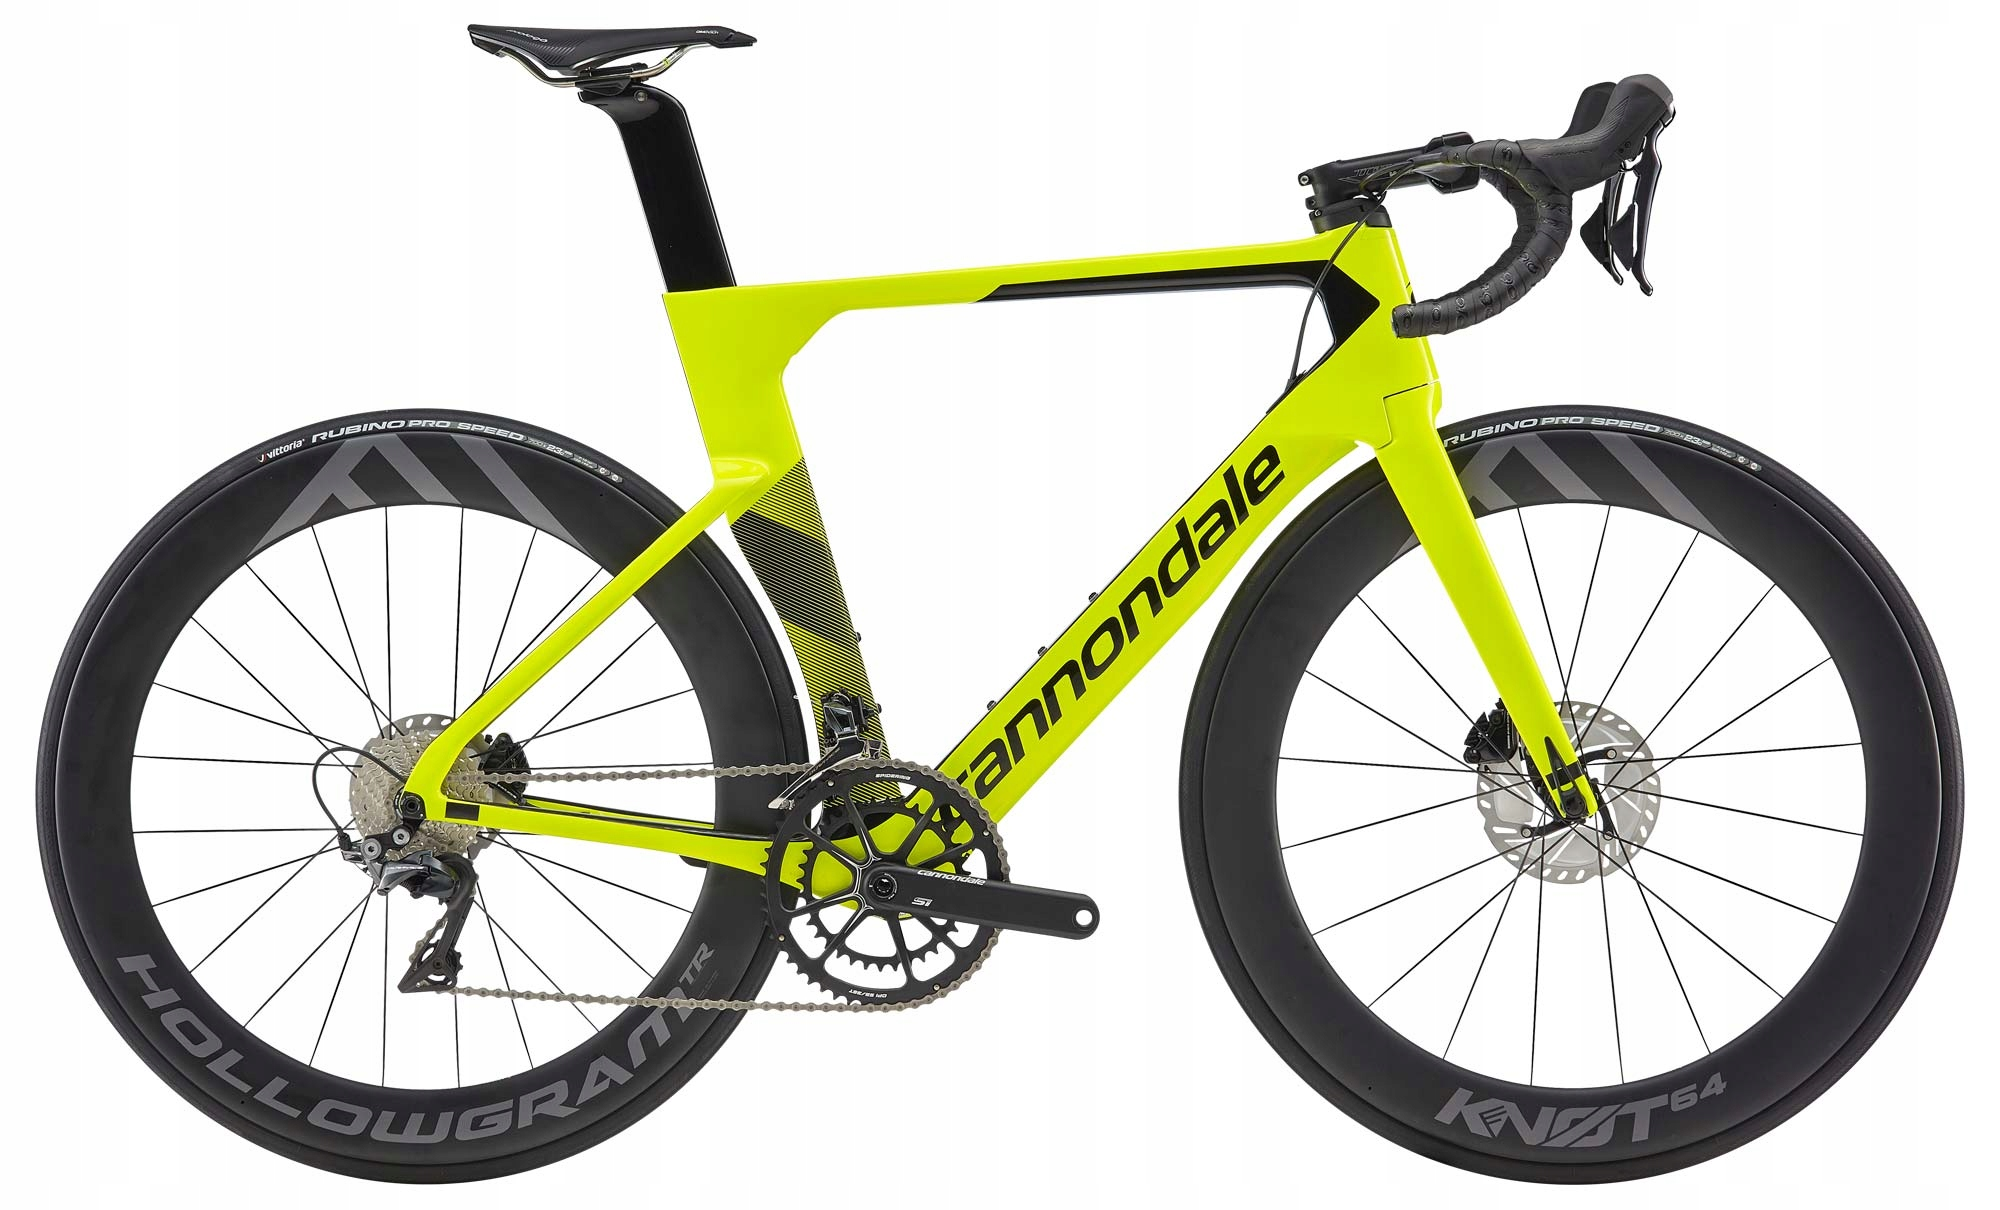 Rower szosowy 2019 SystemSix Carbon Dura-Ace